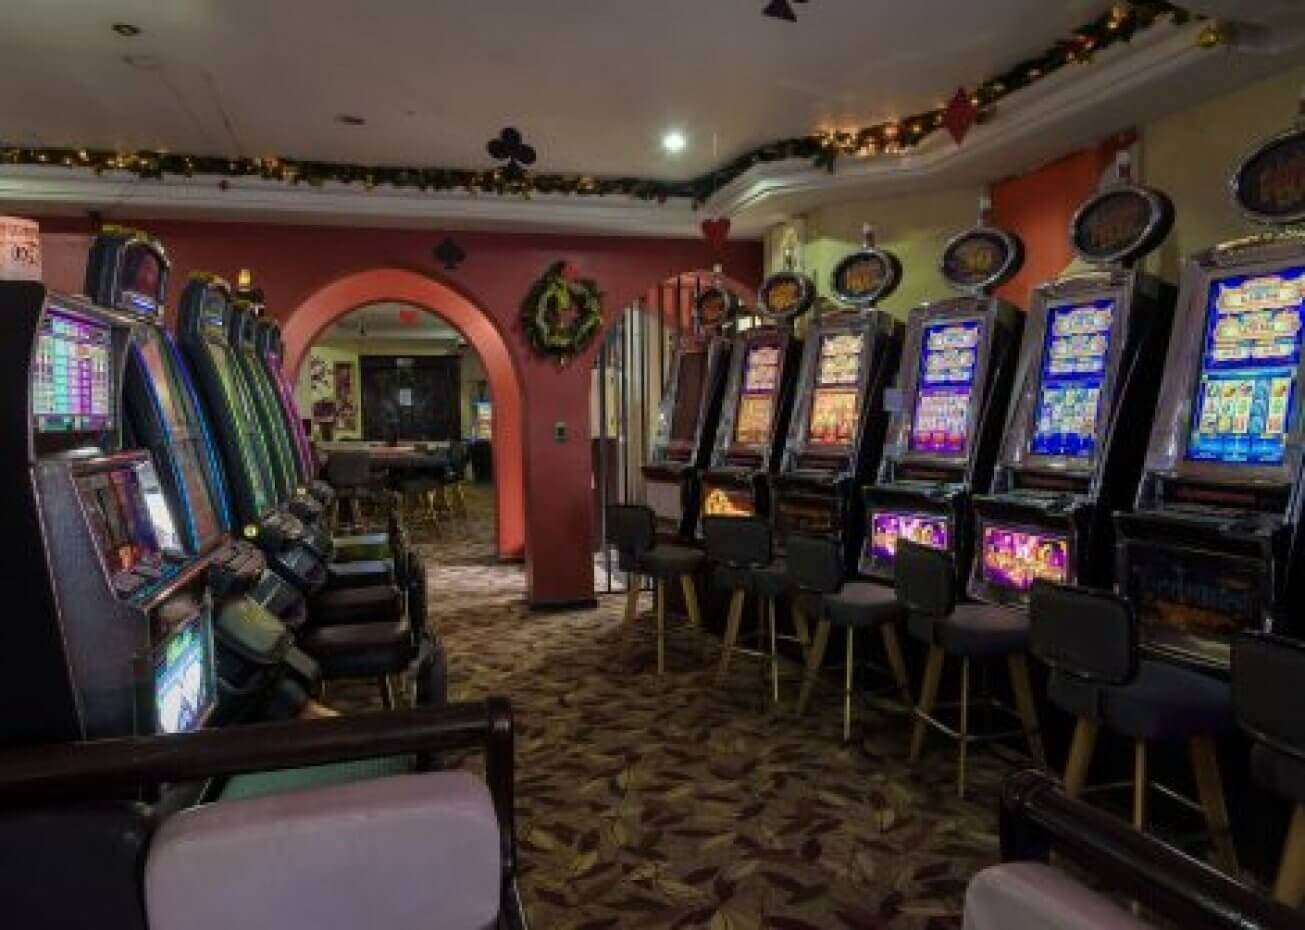 Gallo Casino Kamuk: You Won't Need Luck to Have a Great Time